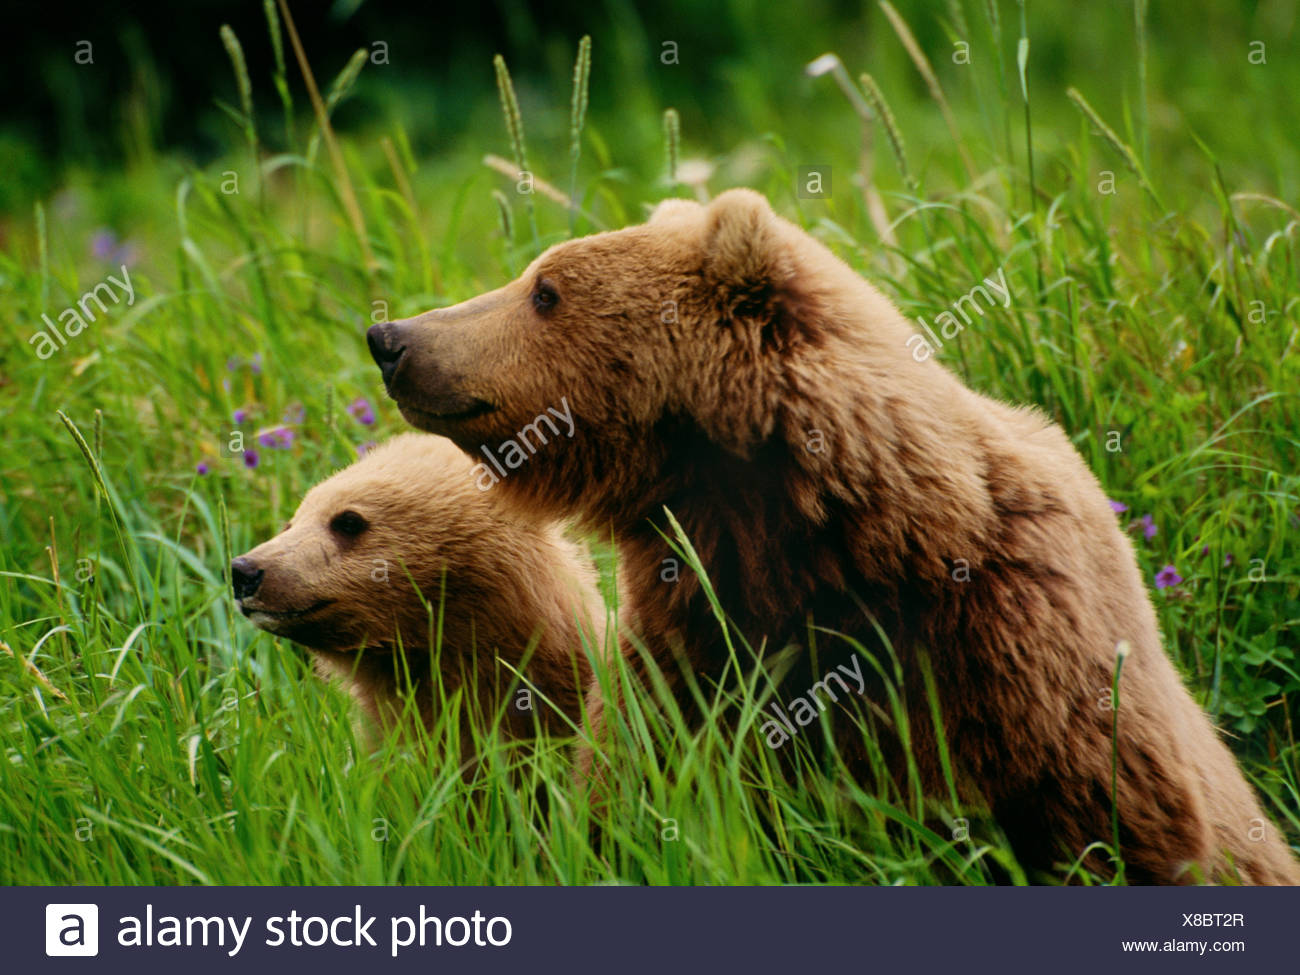 Brown bear and cub, McNeil River Bear Sanctuary, Alaska - Stock Image